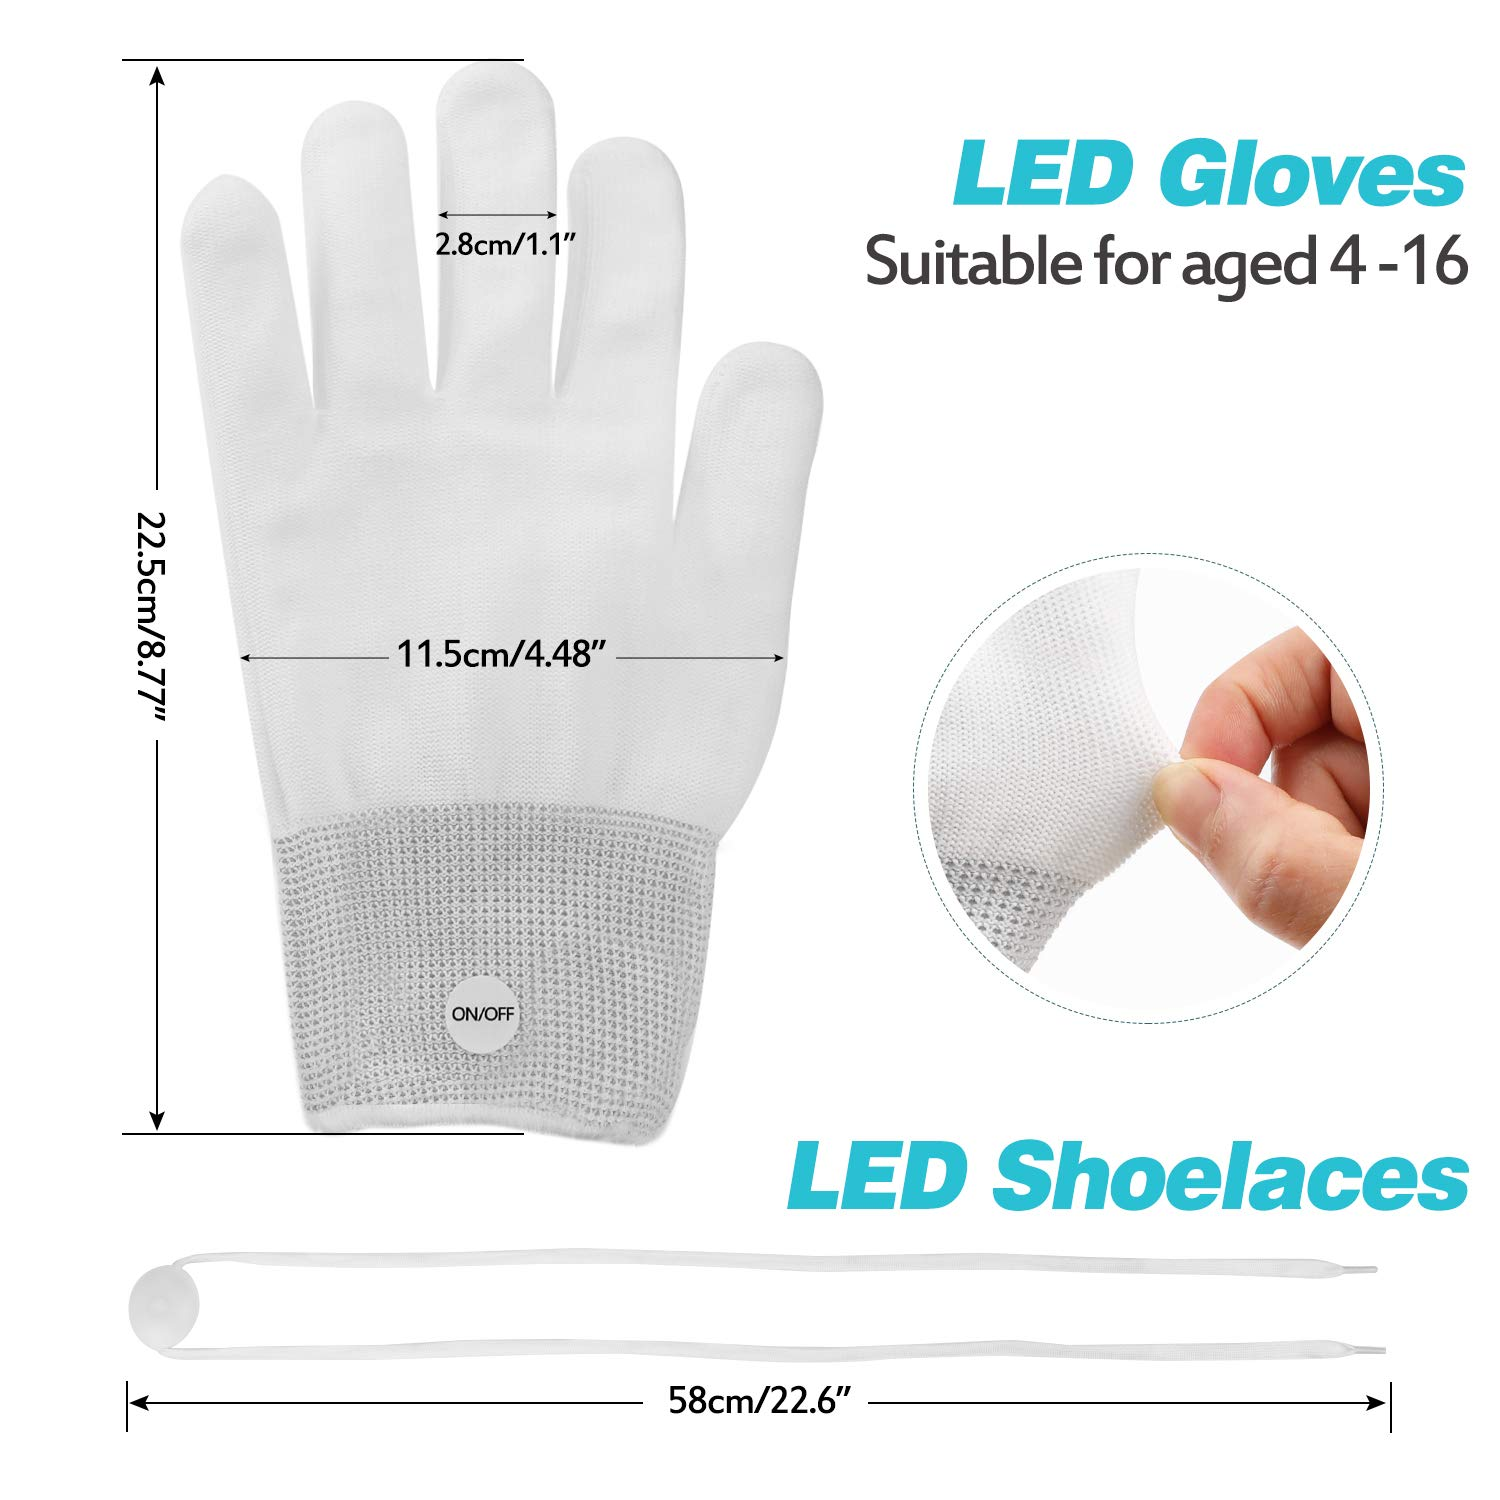 Aywewii LED Gloves, Light Up Gloves for Kids, Flashing LED Gloves with LED Shoelaces Set, Children LED Gloves Glow Flashing Novelty Kids Toys for Christmas Party Best Costume Gift (White)